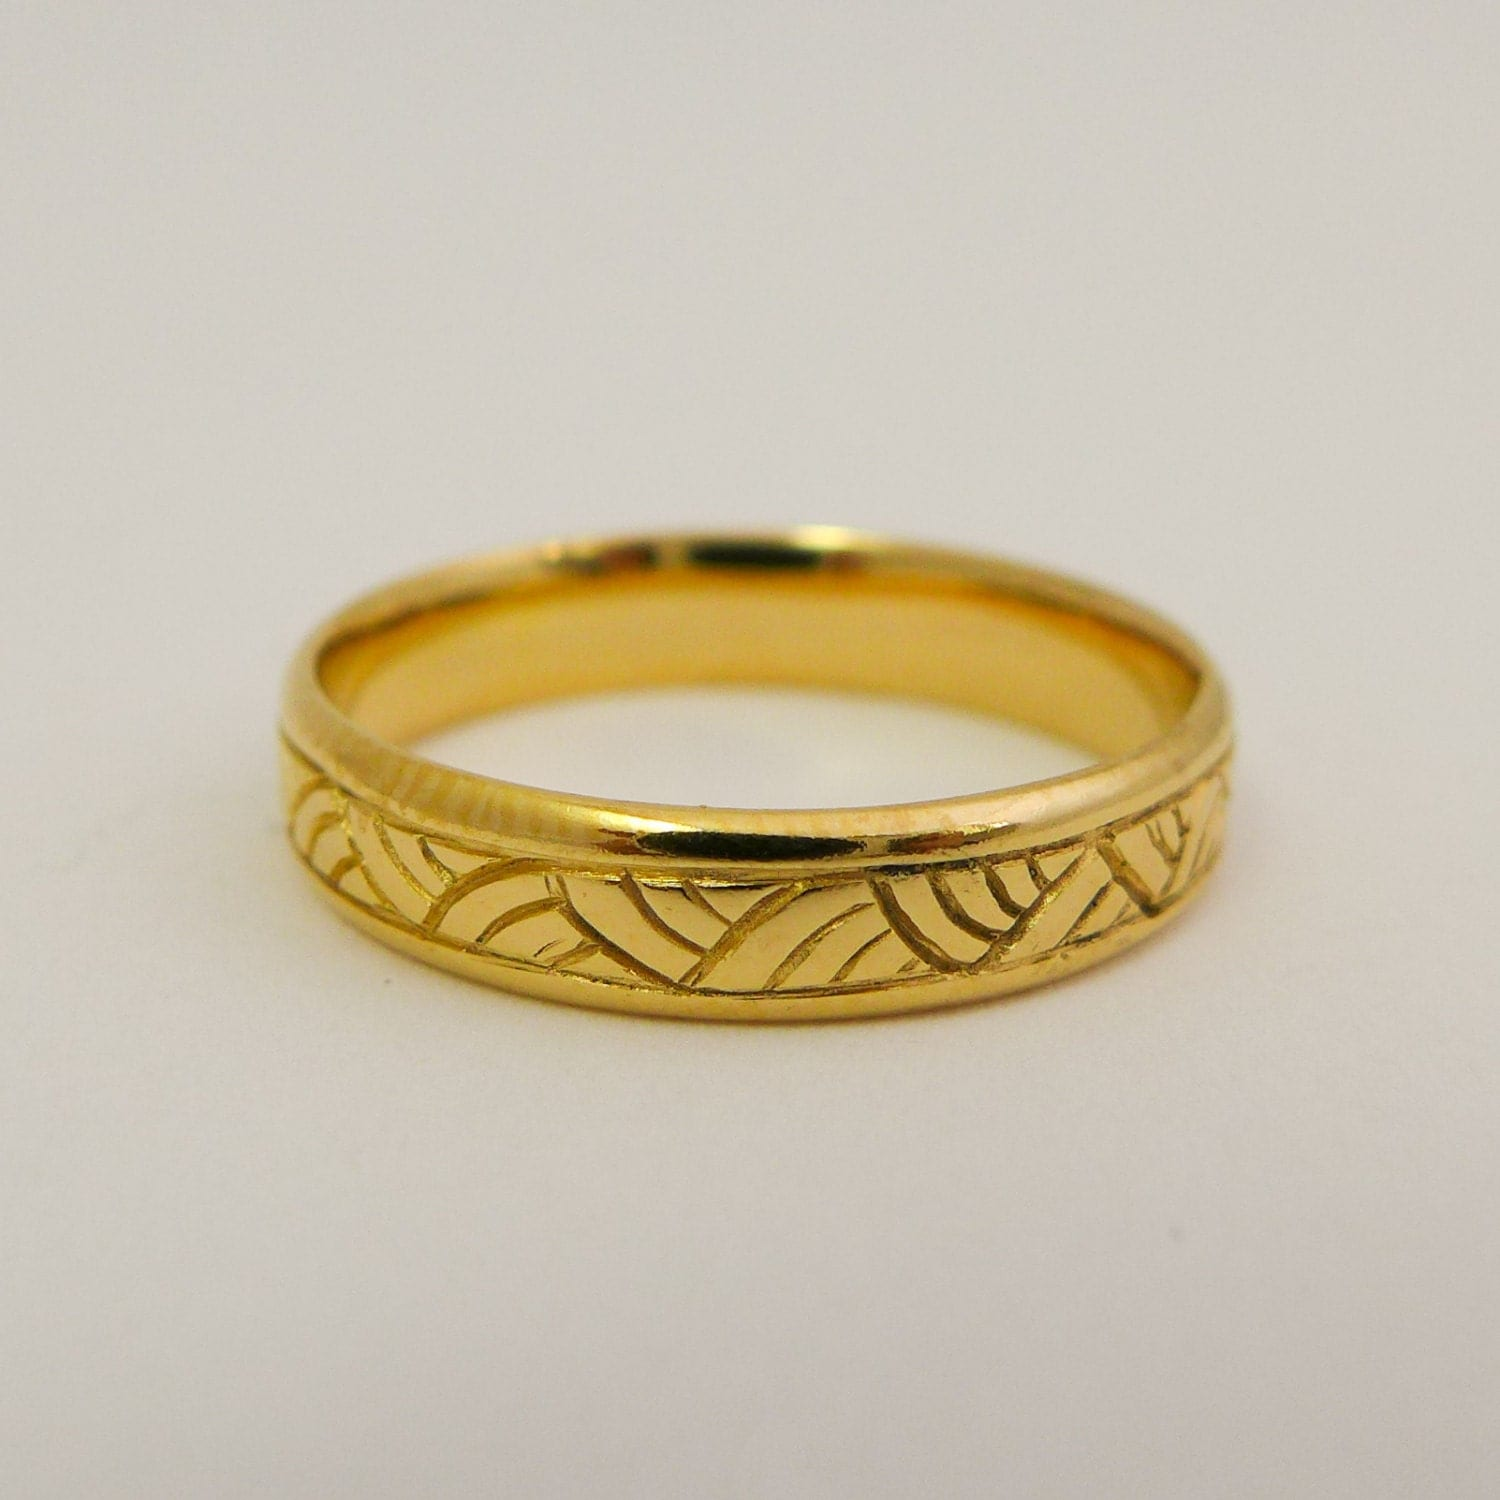 Yellow gold wedding ring 14 karat solid gold wedding band for